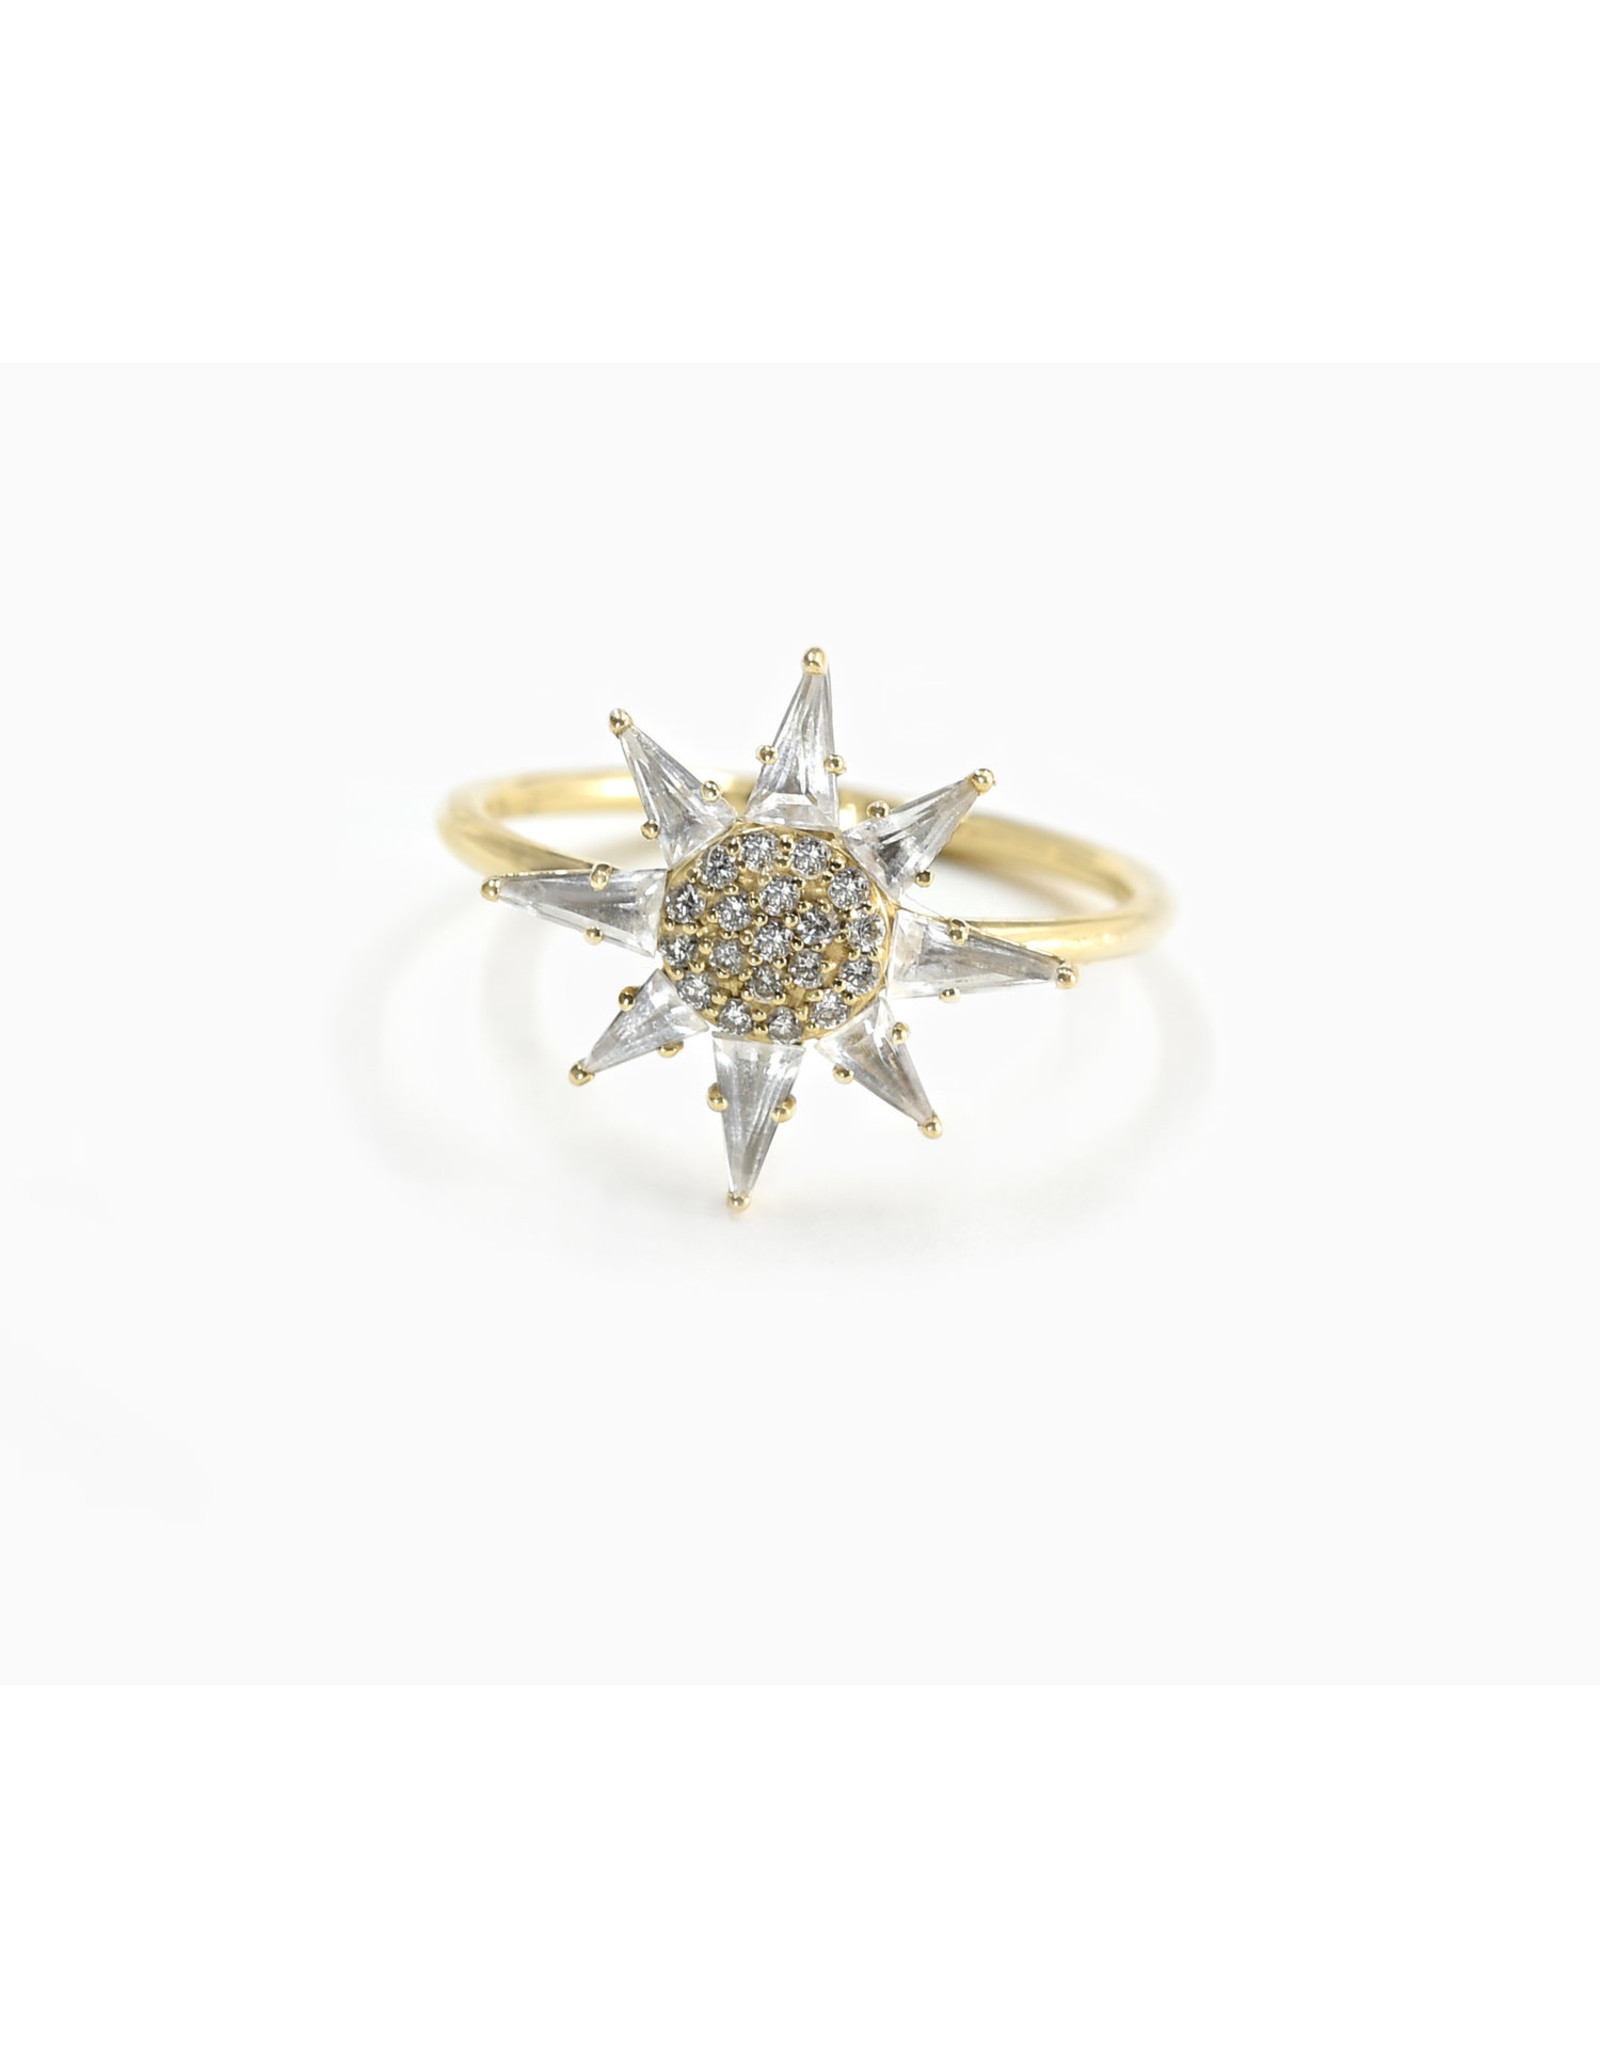 Bondeye Jewelry Bondeye Clio White Topaz Ring (Size: 6.5, Color: Yellow Gold / White Topaz / White Diamond)